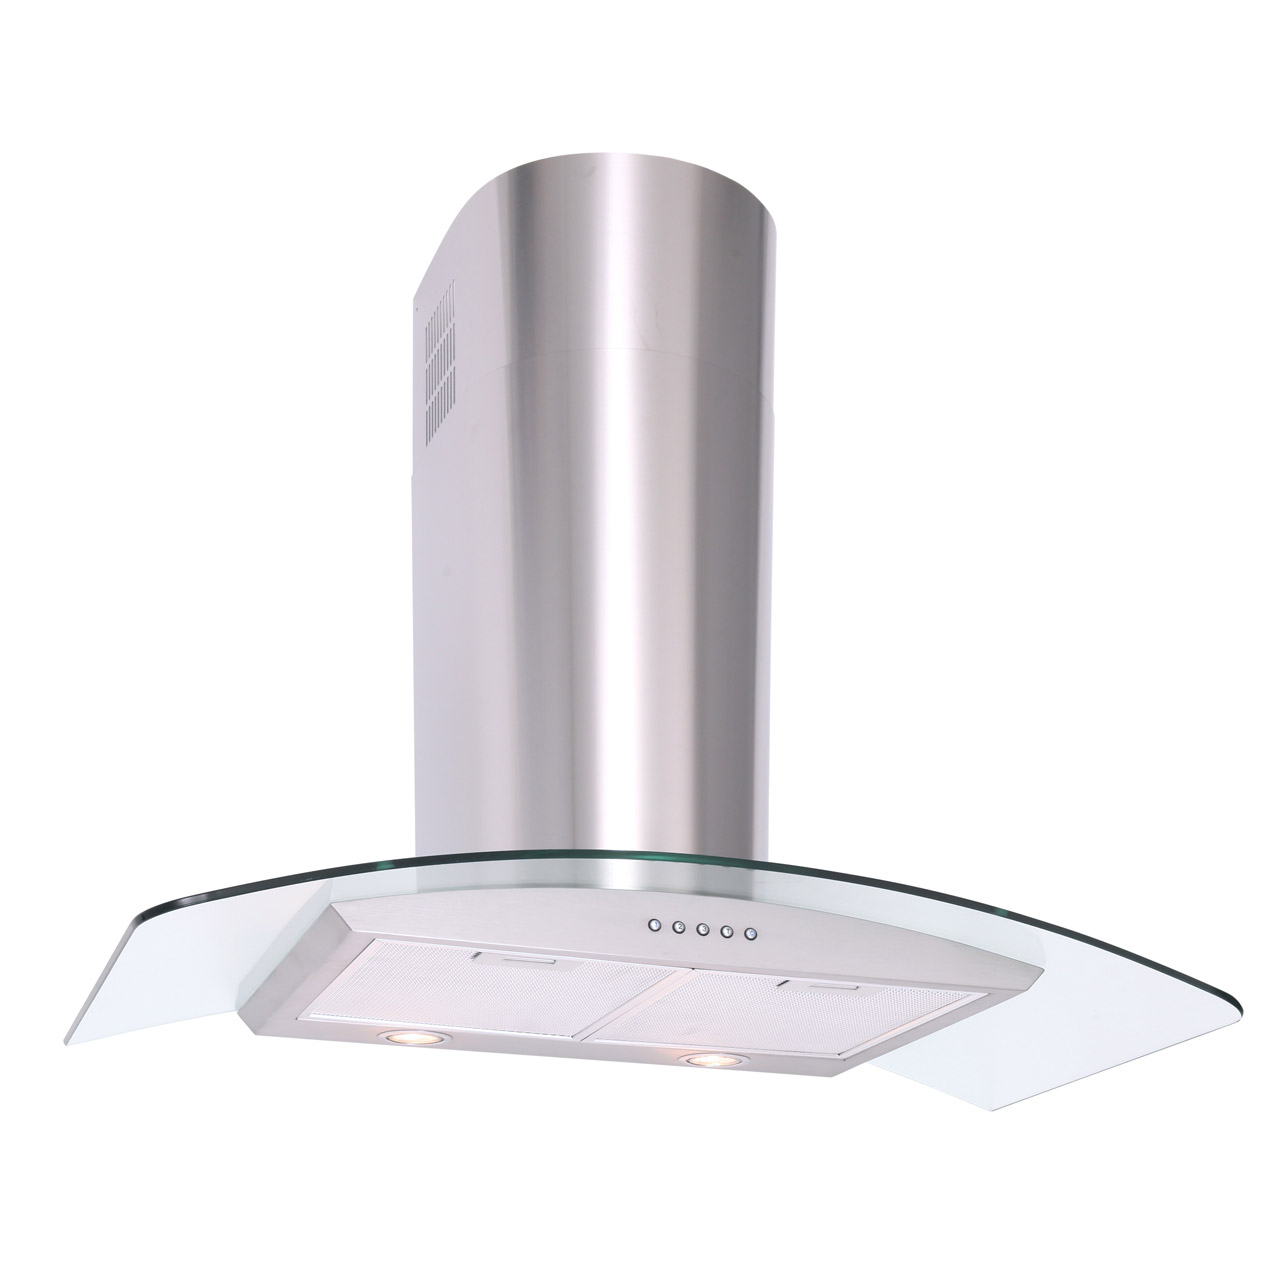 Luxair LA80 CVD SS 80cm CURVED Glass Cooker Hood In Stainless Steel